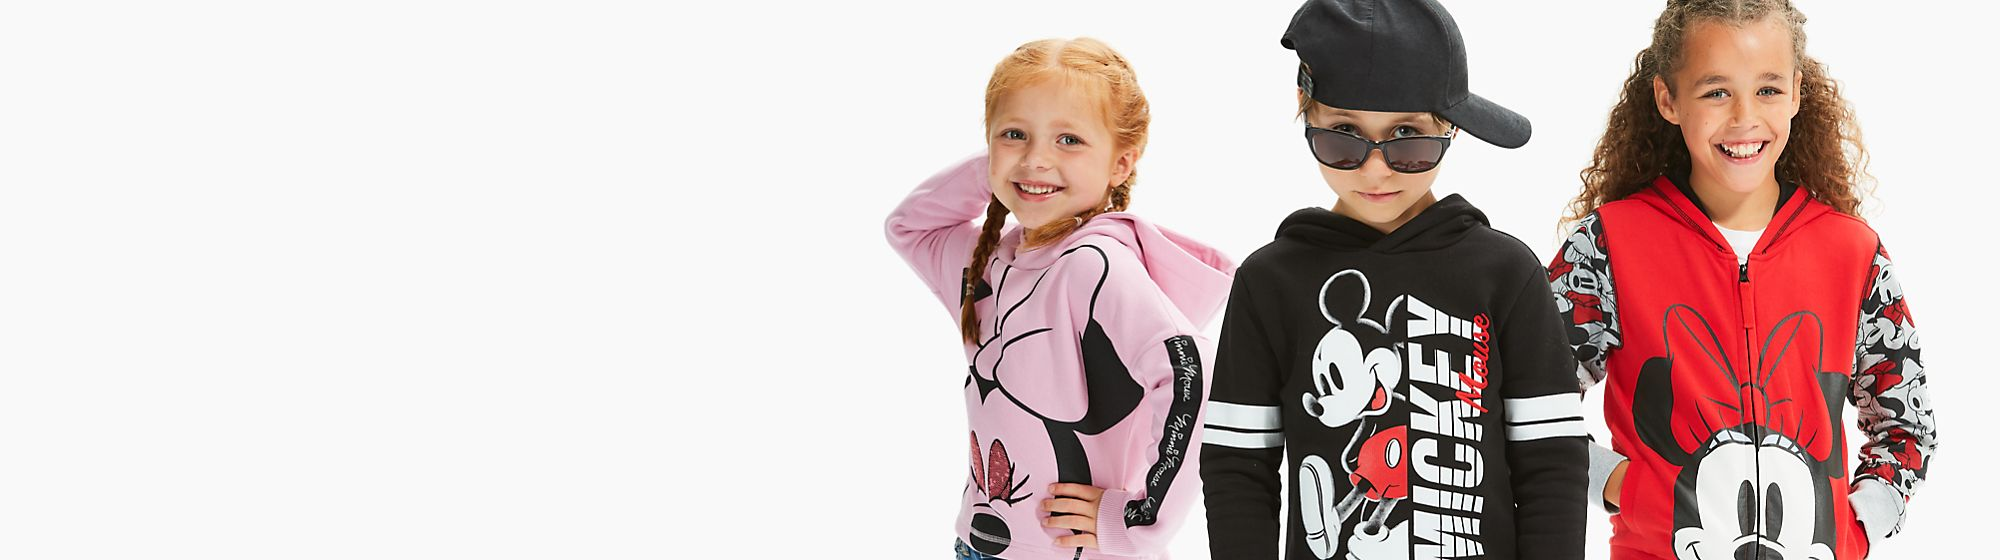 Kid's Clothing Check out our range of Disney, Star Wars and Marvel kid's clothing. Find T-Shirts, jackets and much more. DISCOVER MORE